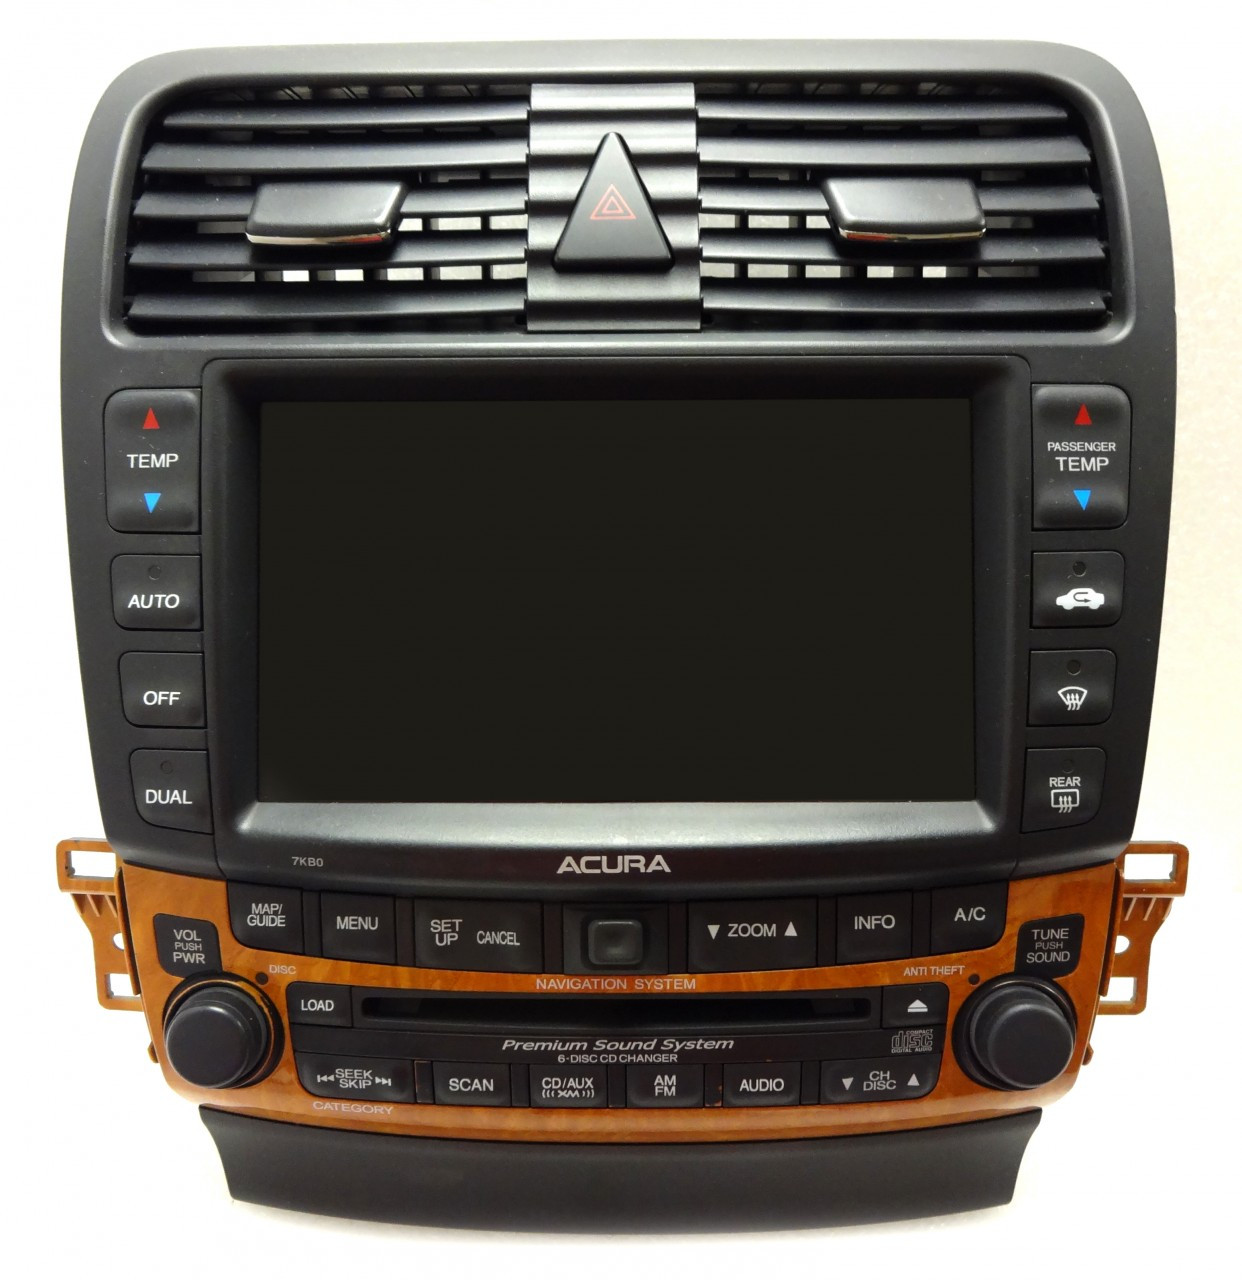 7KB0 05 06 07 08 GPS XM Satellite Radio Stereo 6 CD Changer